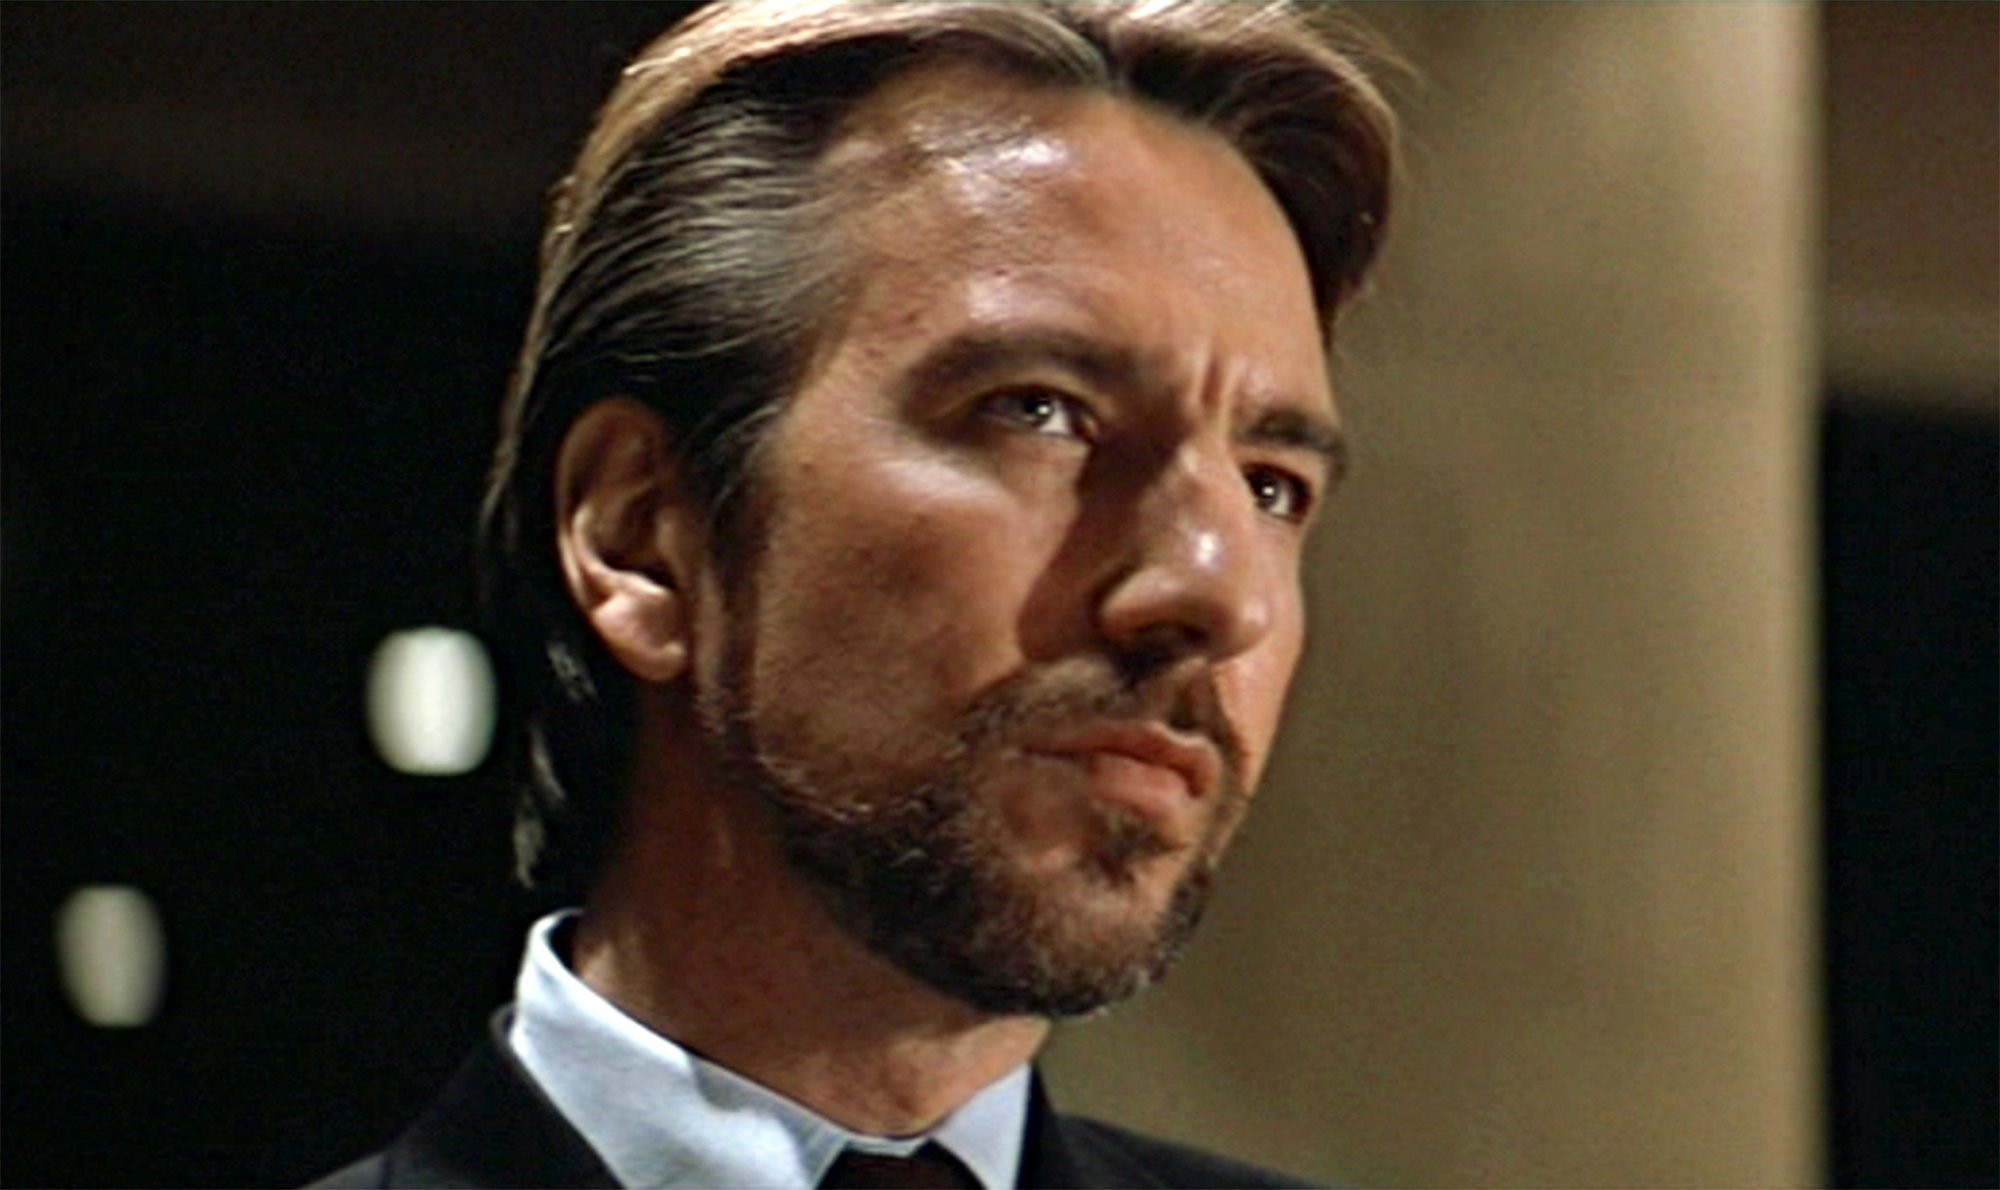 Alan Rickman 20 'Christmas Movies' That Aren't Actually Christmas Movies At All